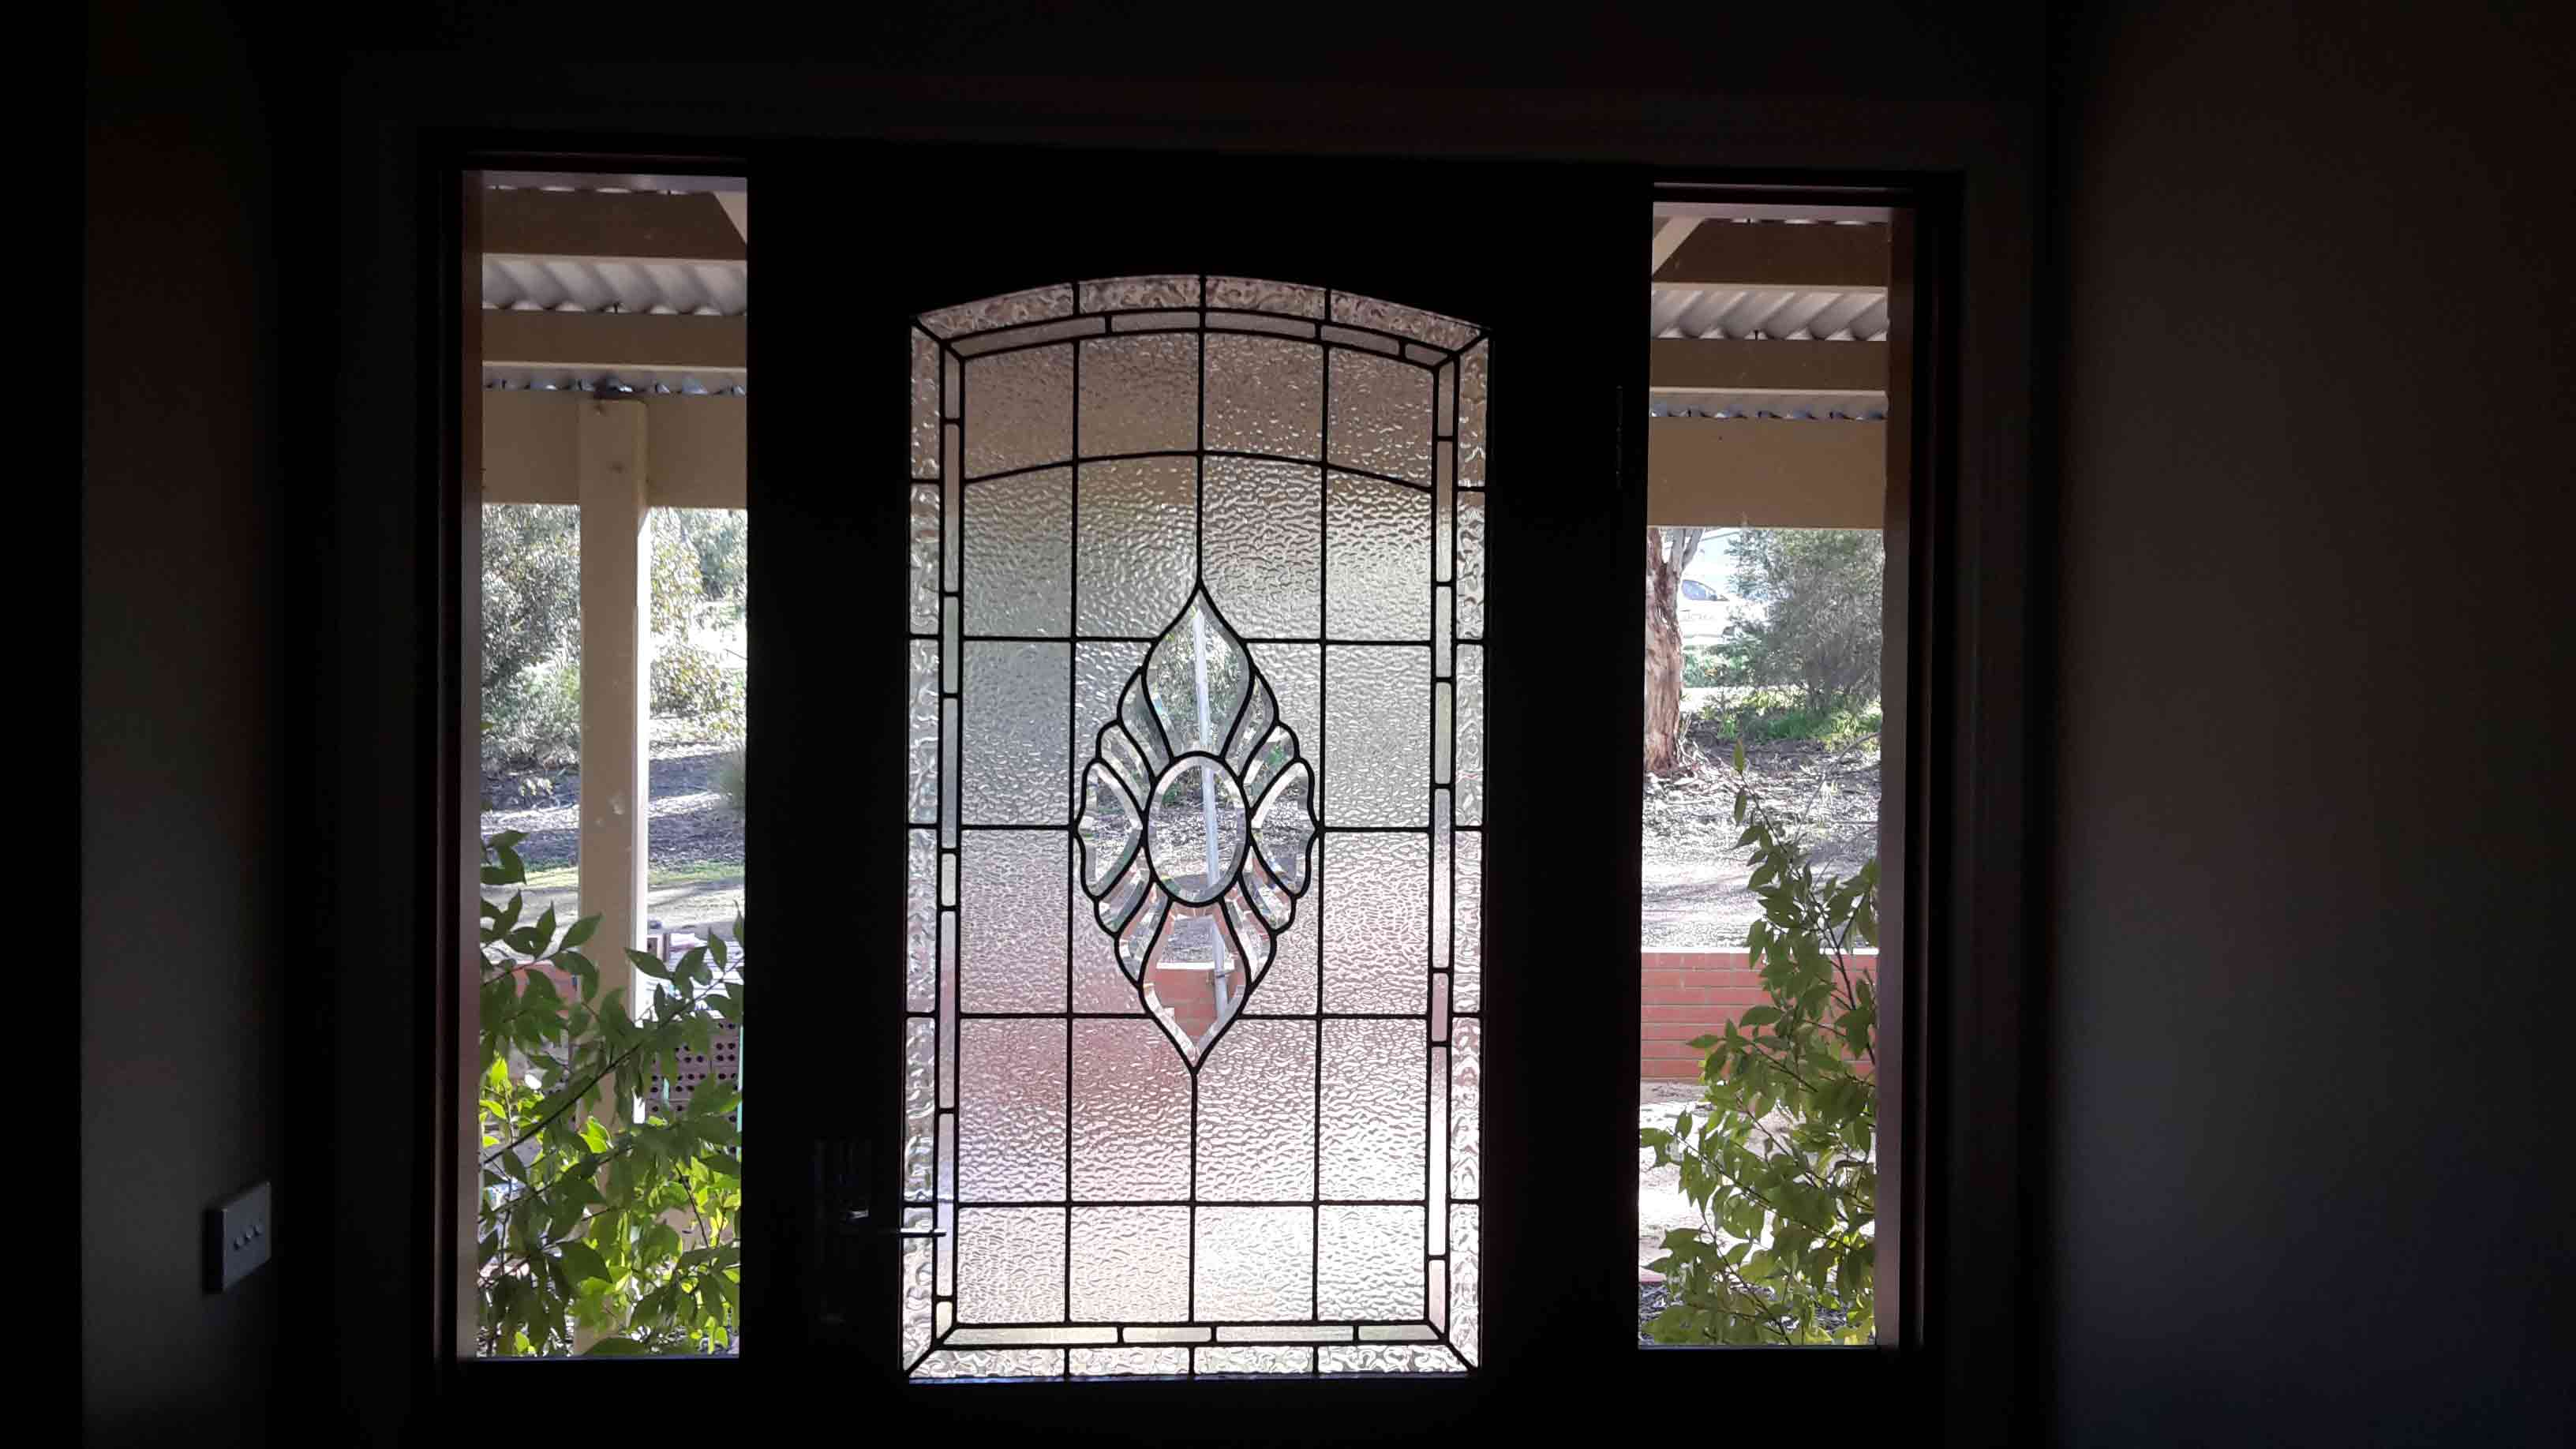 Have a crack glass glazier glass replacement services for Window glass design 5 serial number